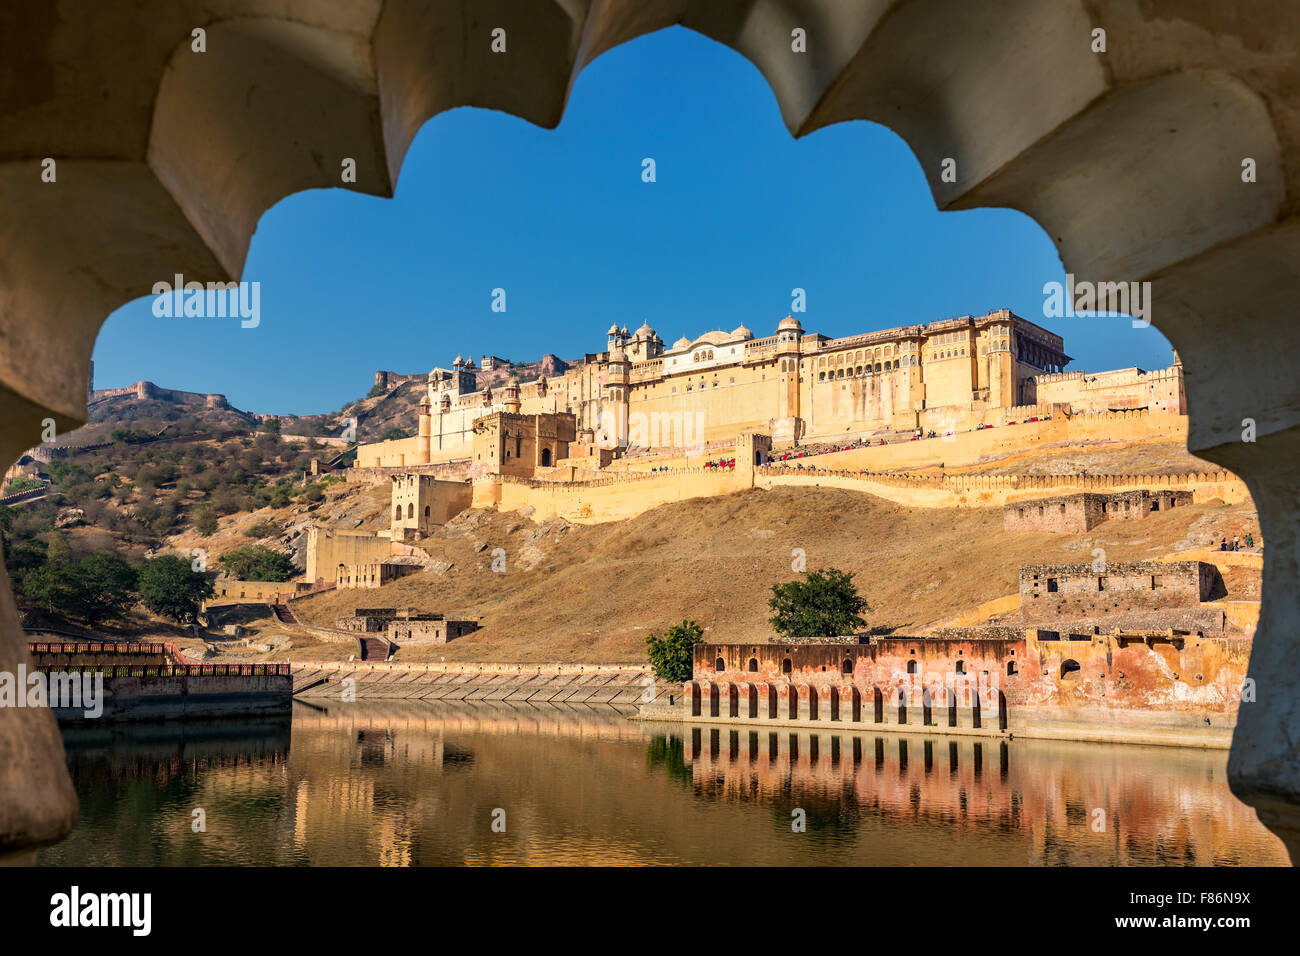 Amber Fort, a Jaipur, India Immagini Stock